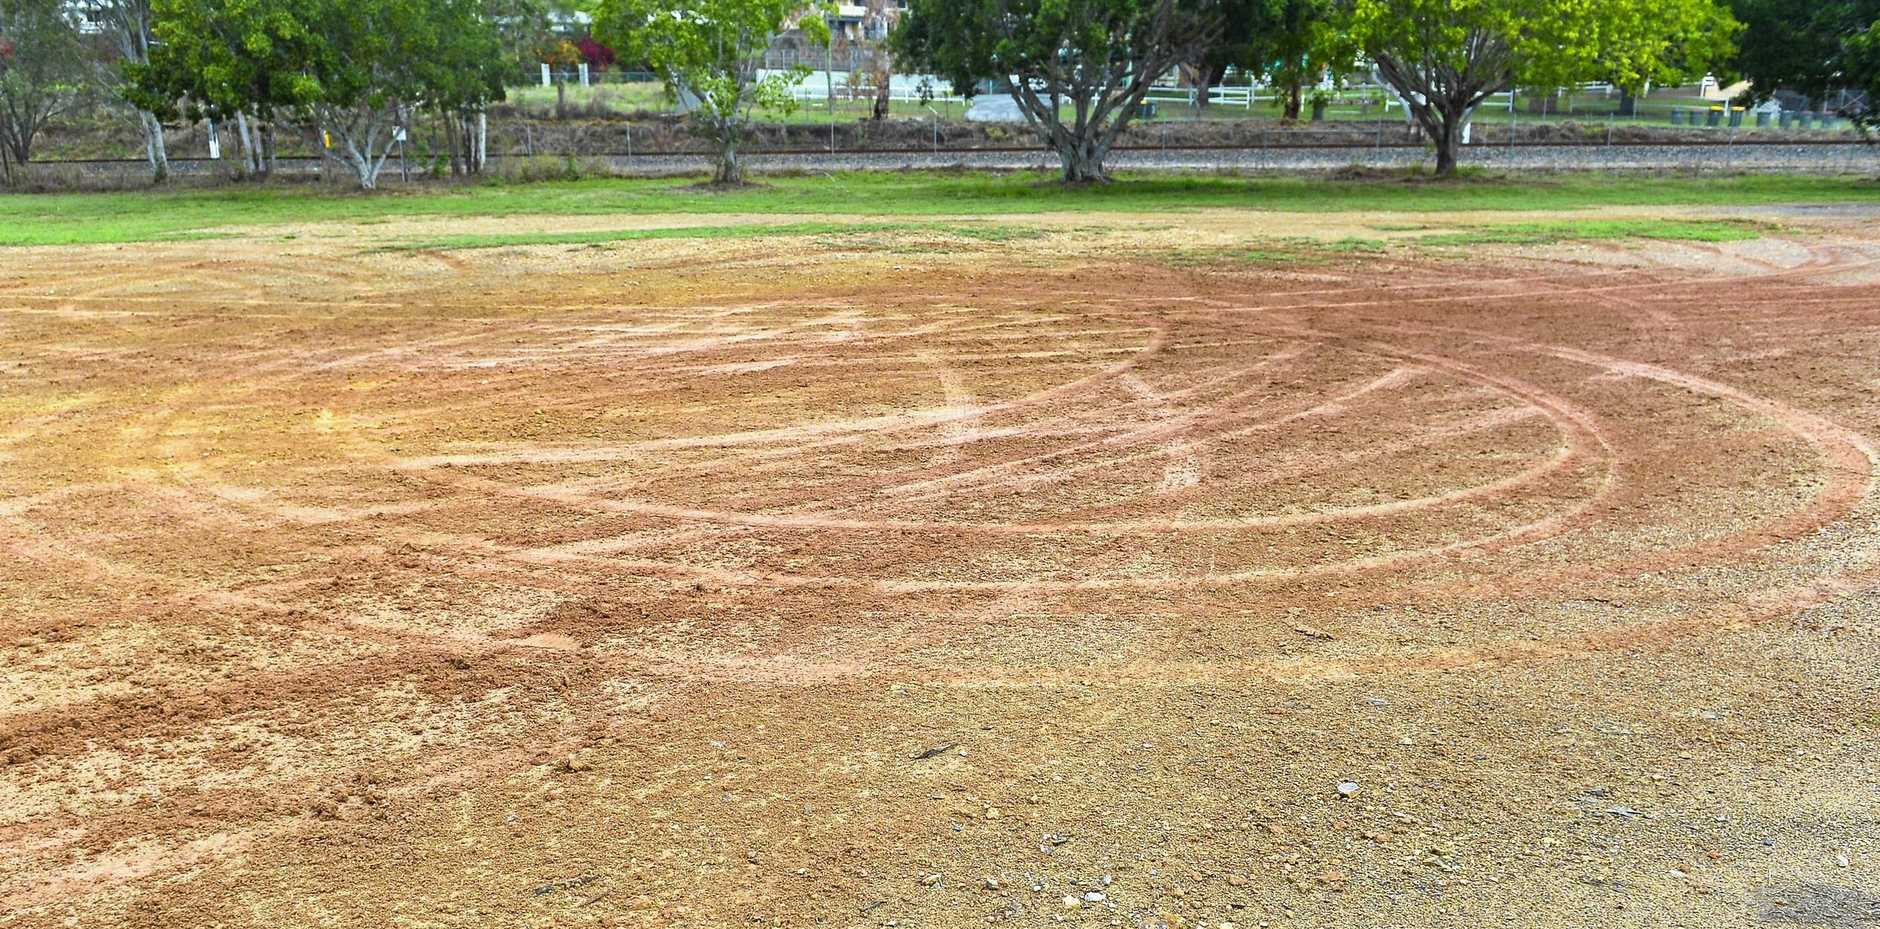 Photos of a local soccer field, after drivers were allegedly seen doing burnouts.